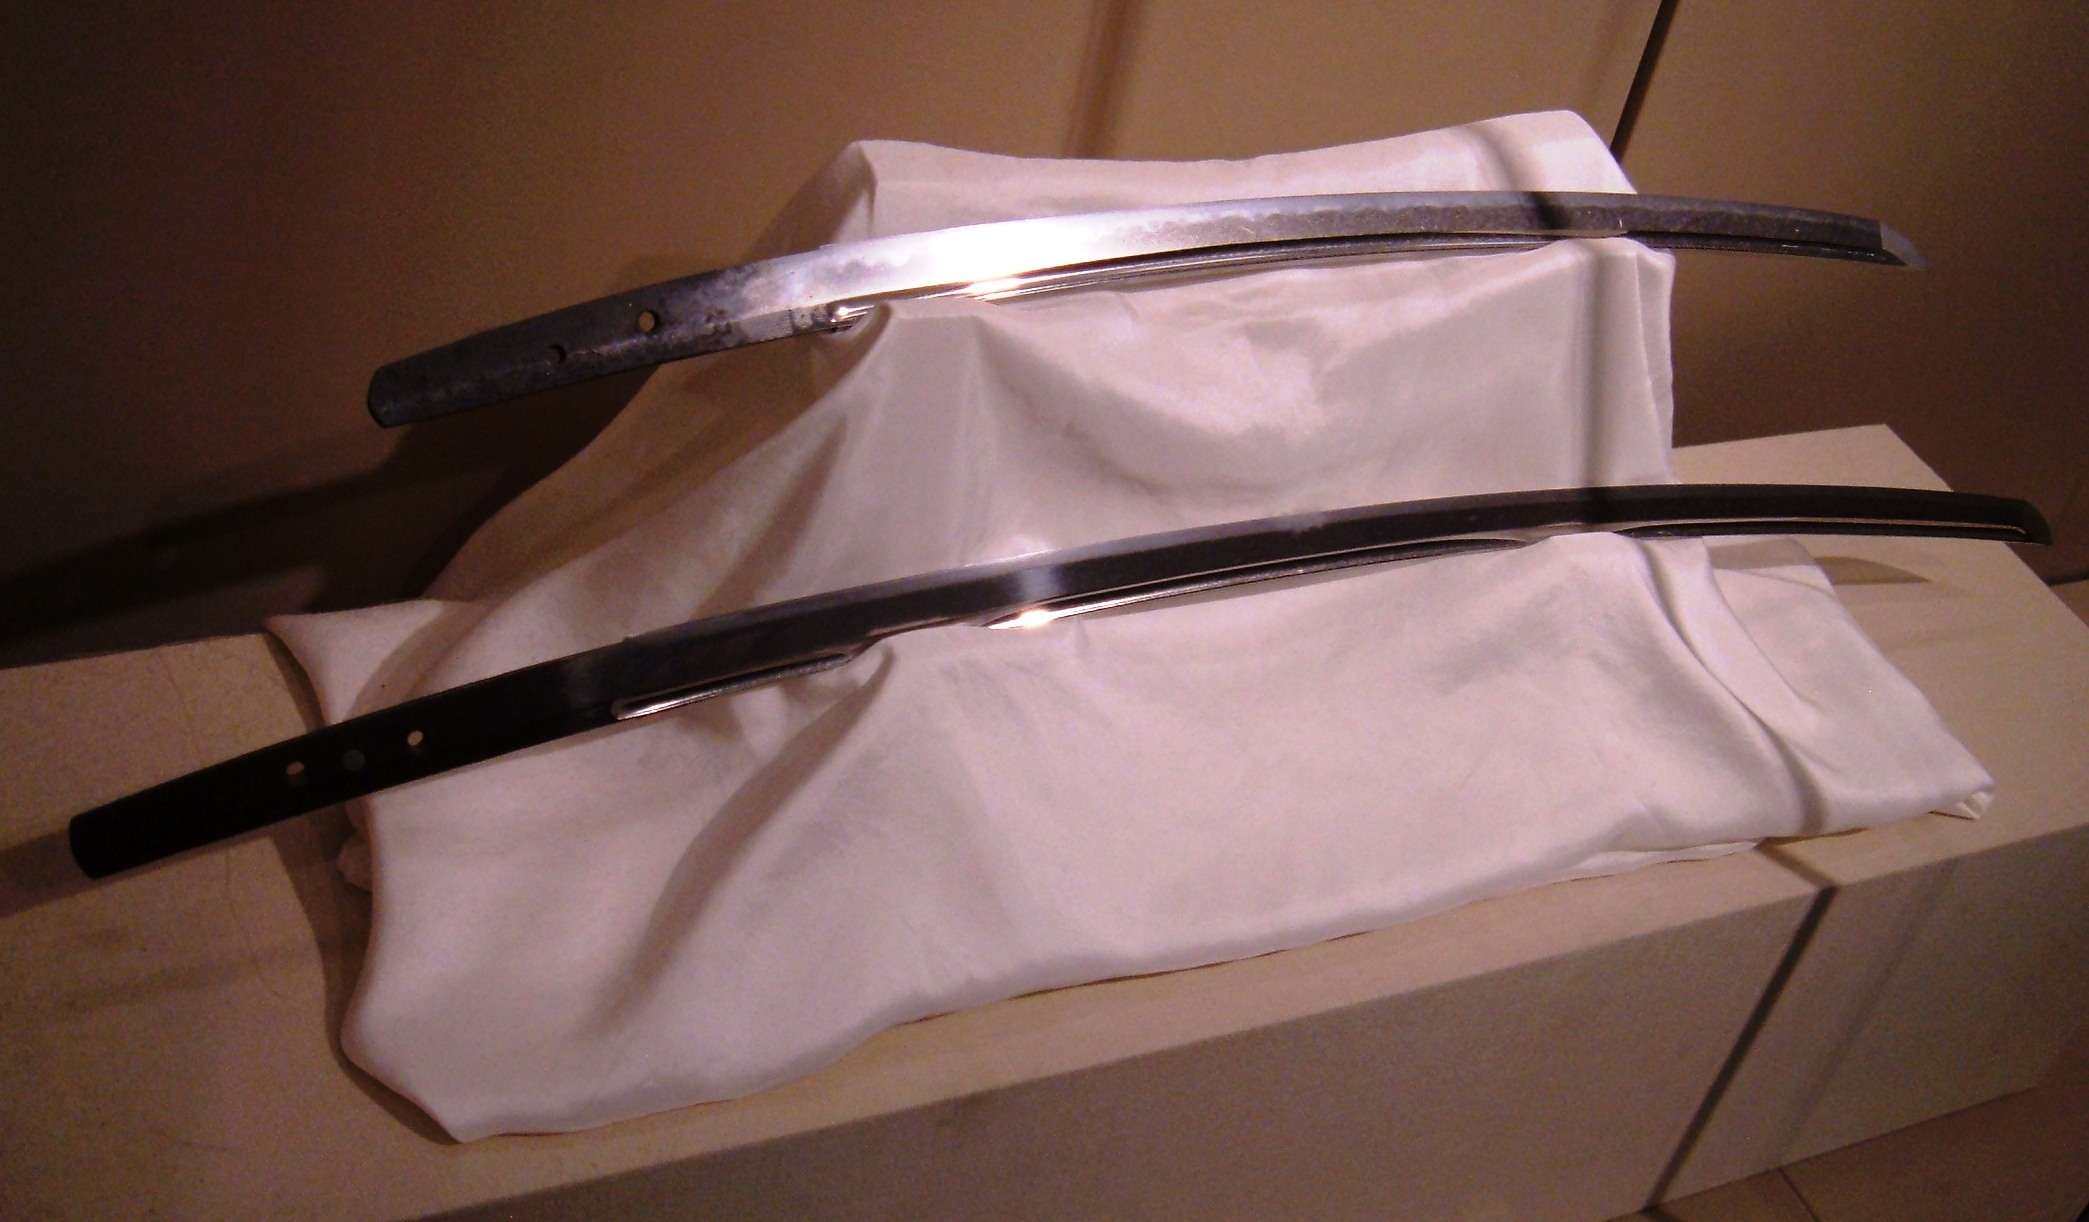 The curvature of a two japanese swords